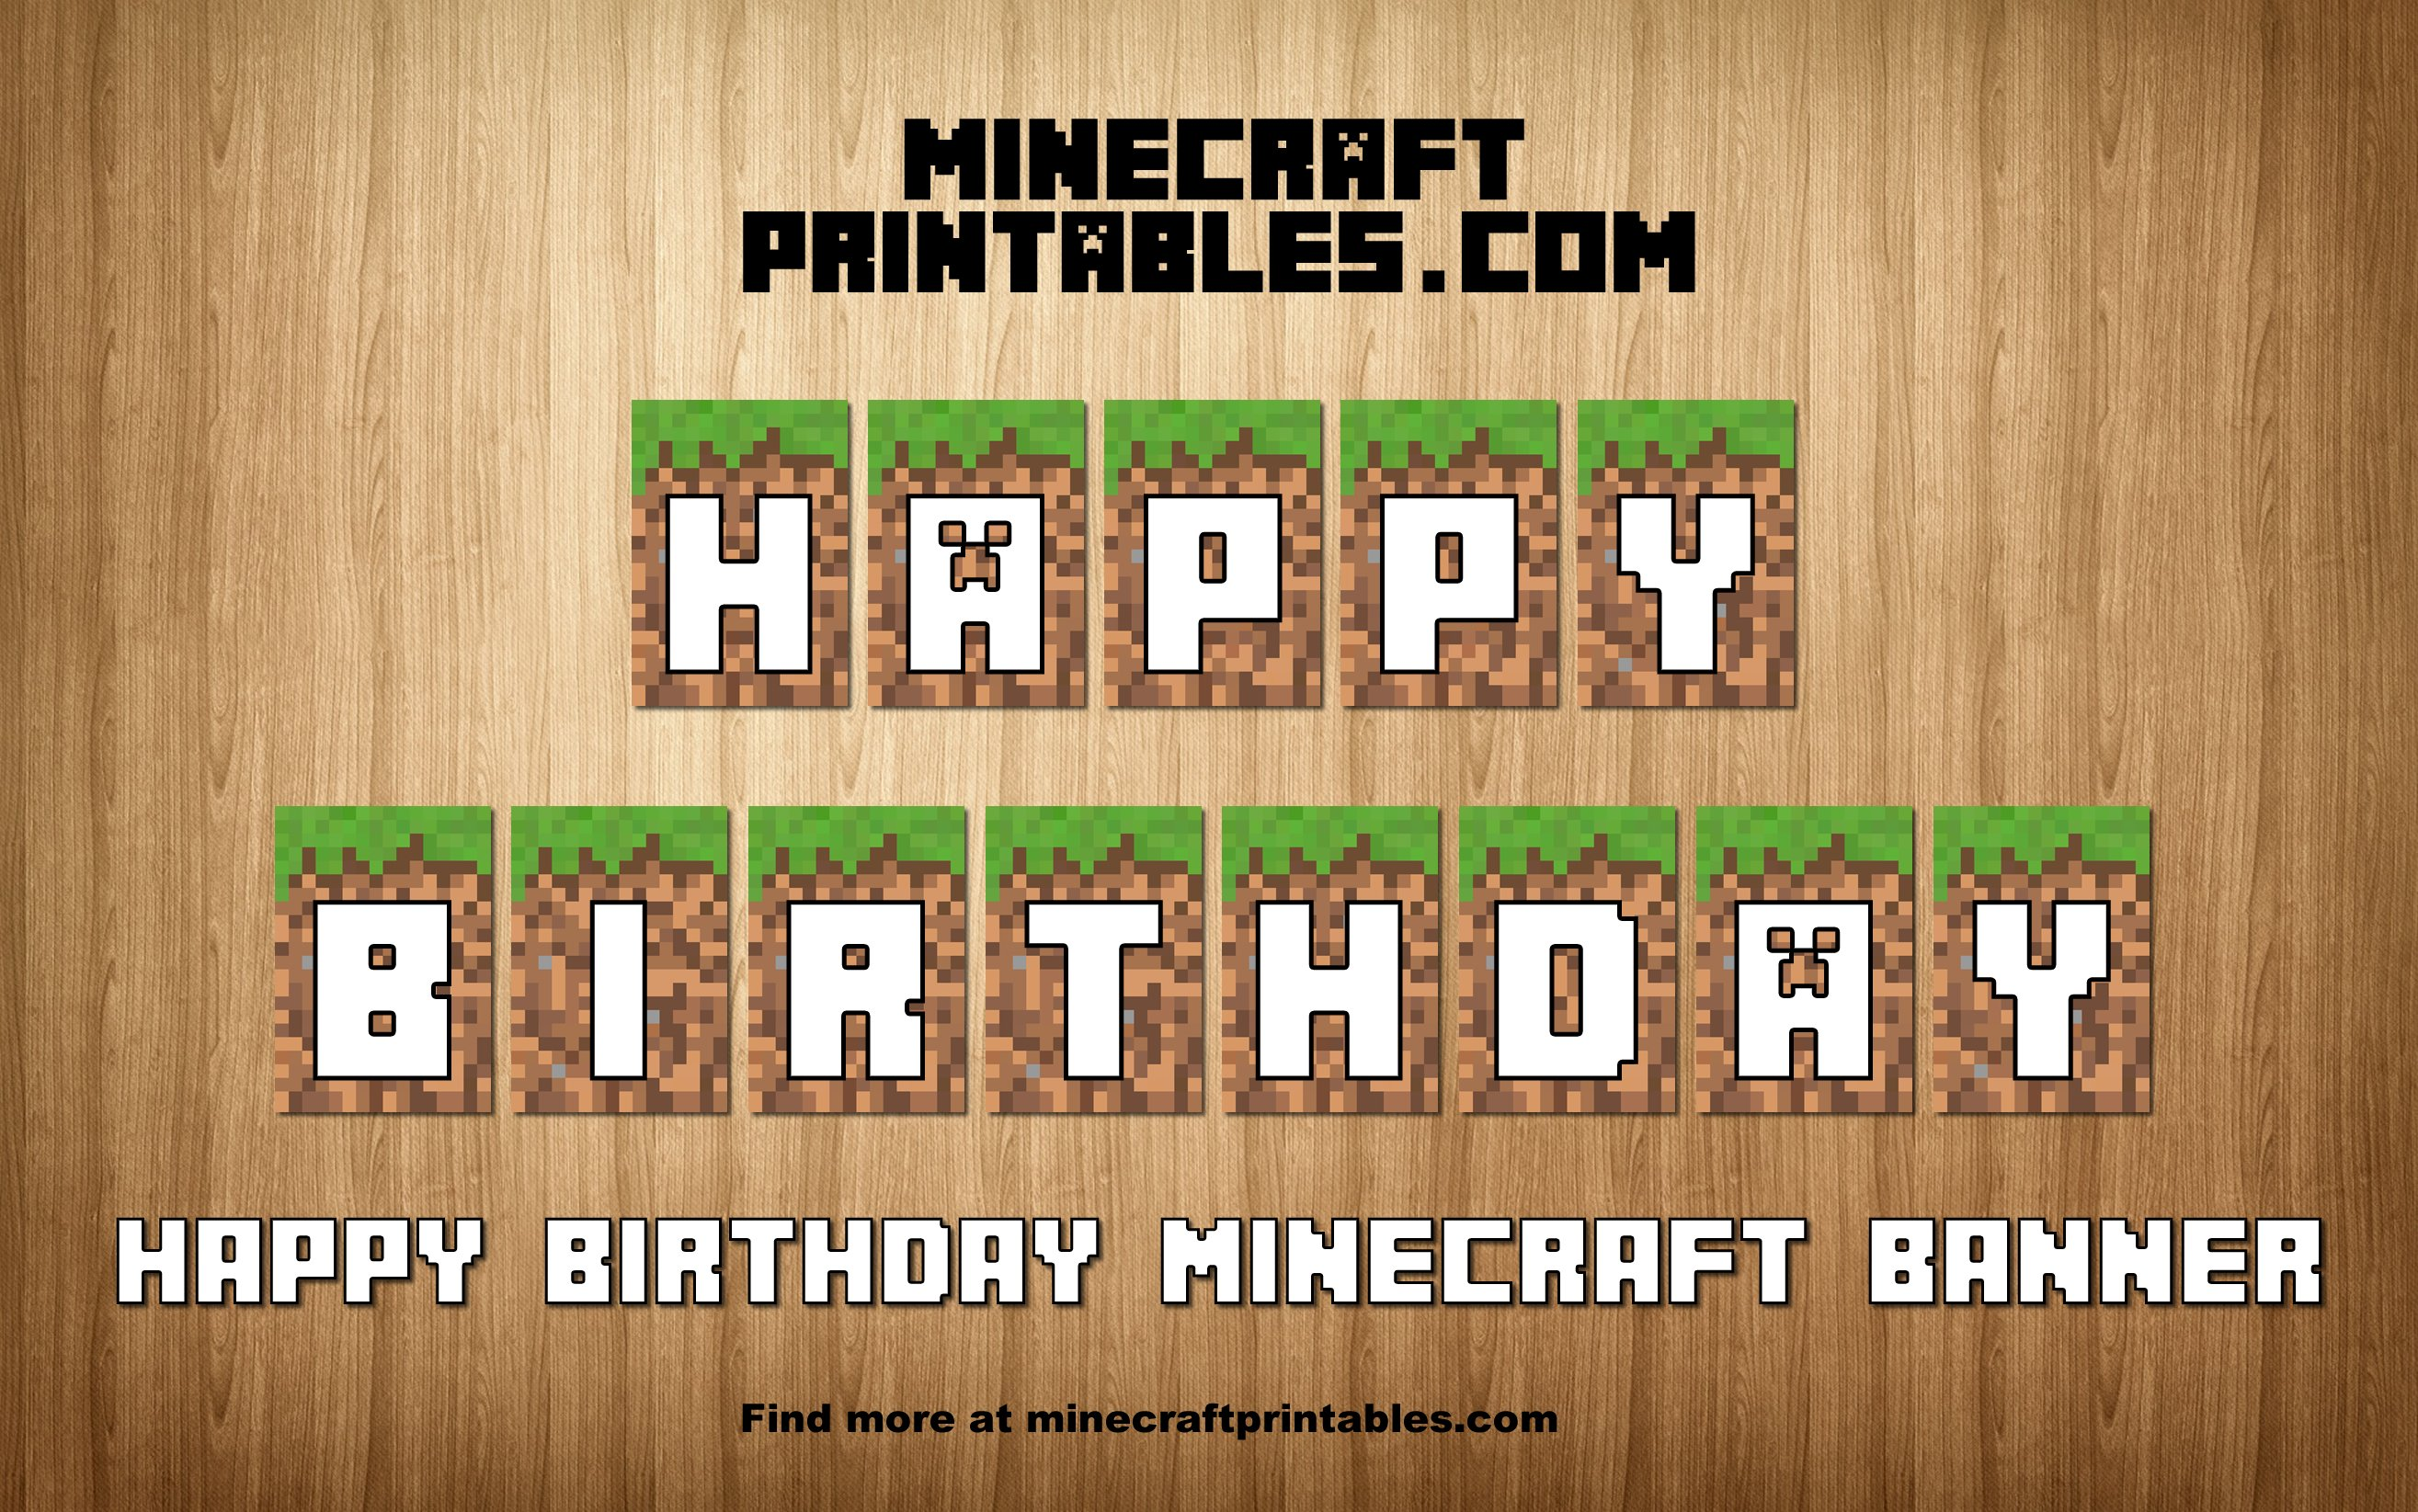 graphic regarding Minecraft Birthday Banner Free Printable referred to as Birthday Banner - Printable Minecraft Joyful Birthday Banner